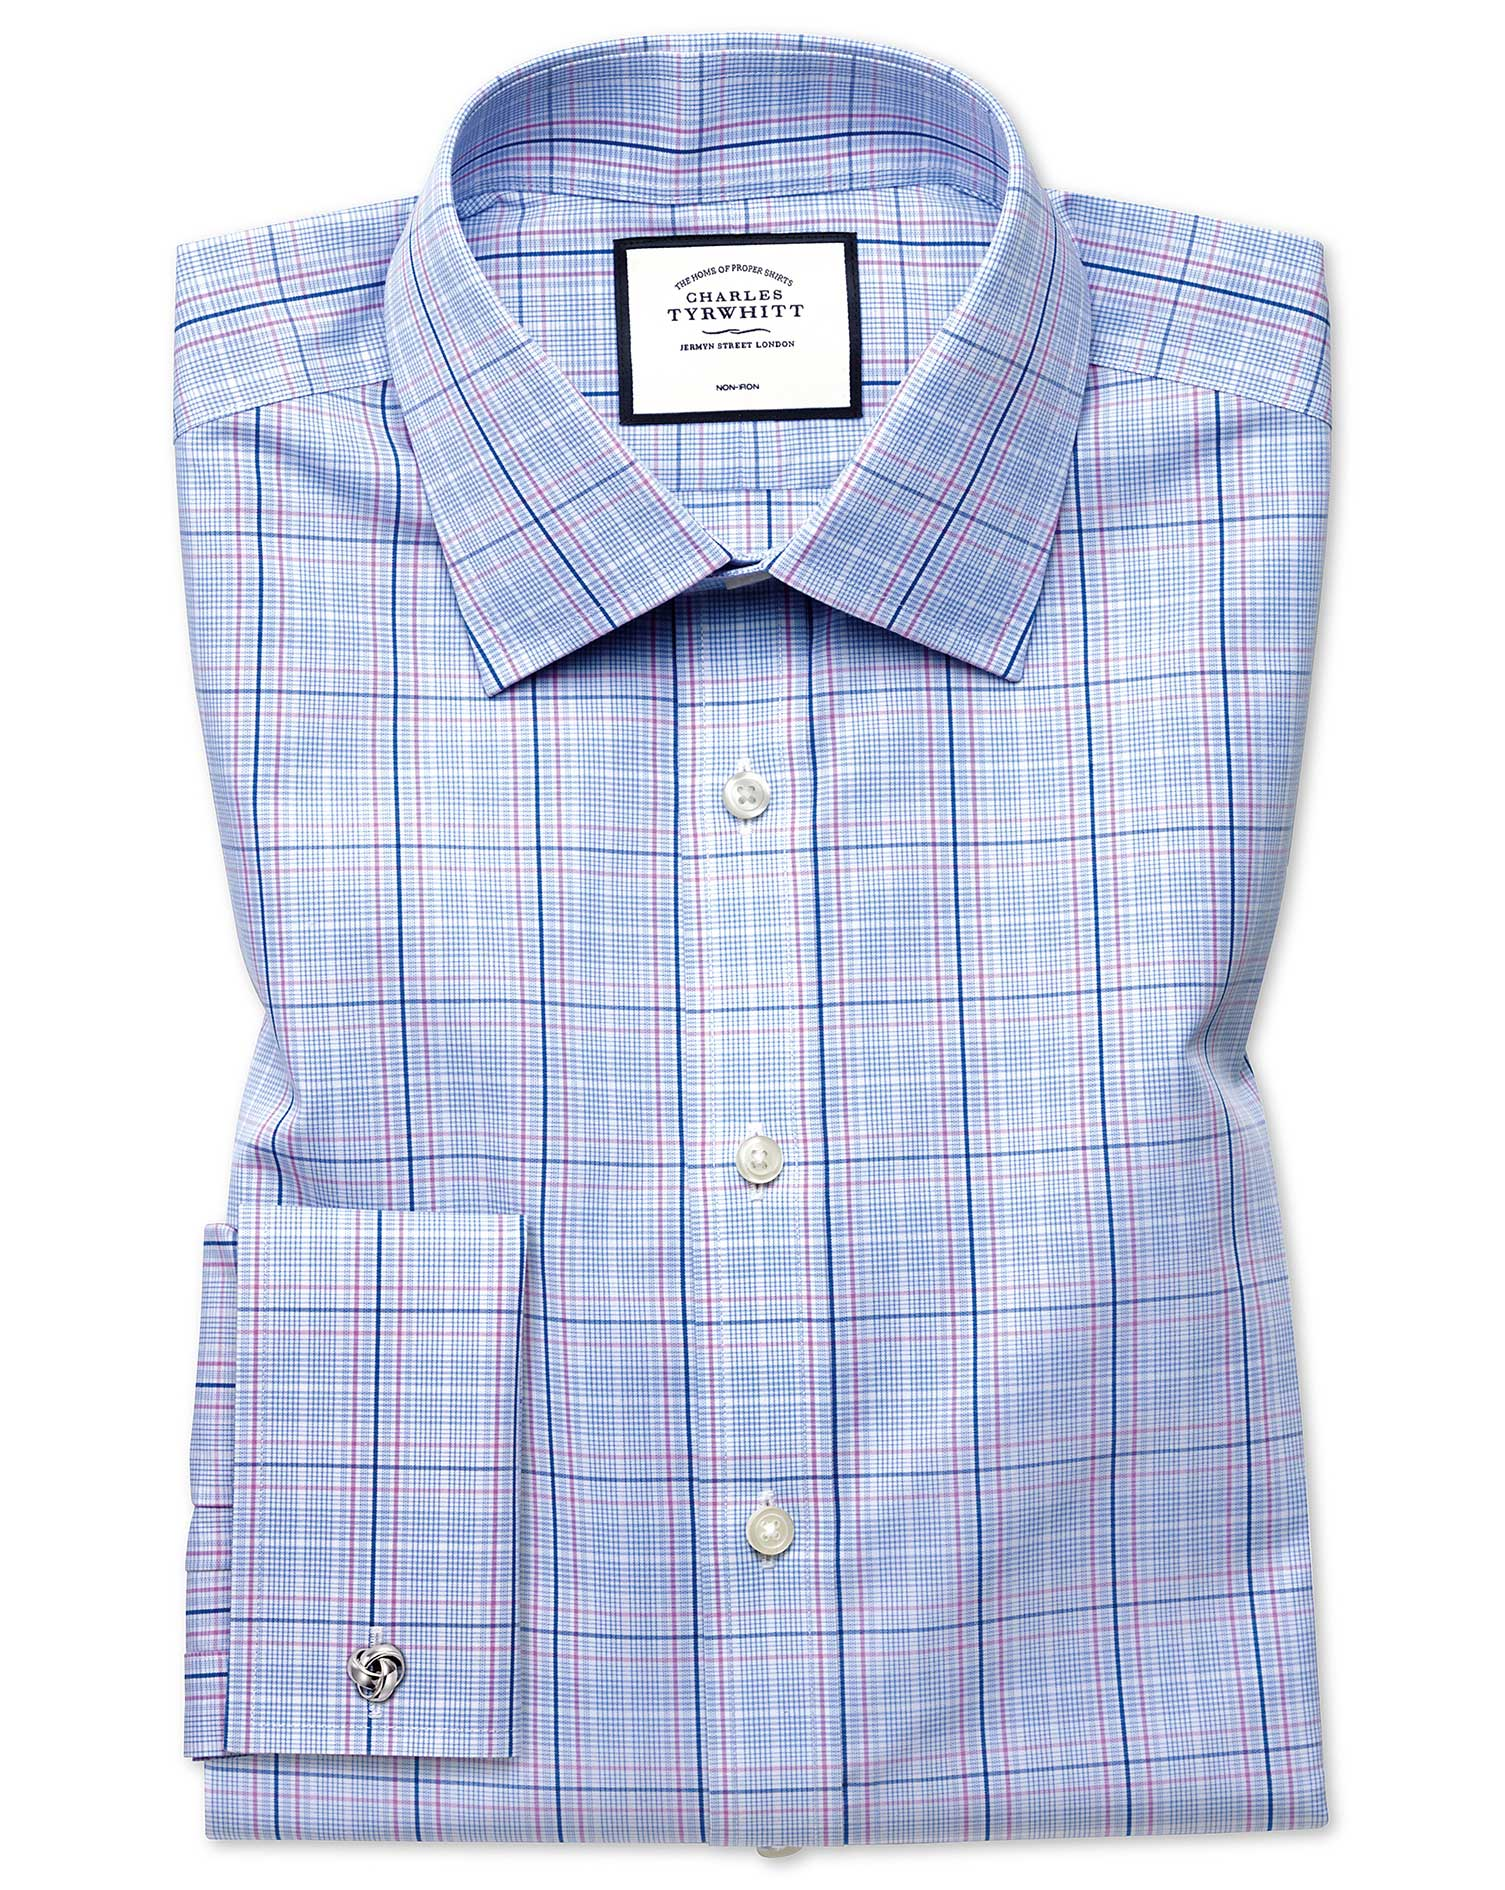 Extra Slim Fit Non-Iron Prince Of Wales Sky Blue and Pink Cotton Formal Shirt Double Cuff Size 15/35